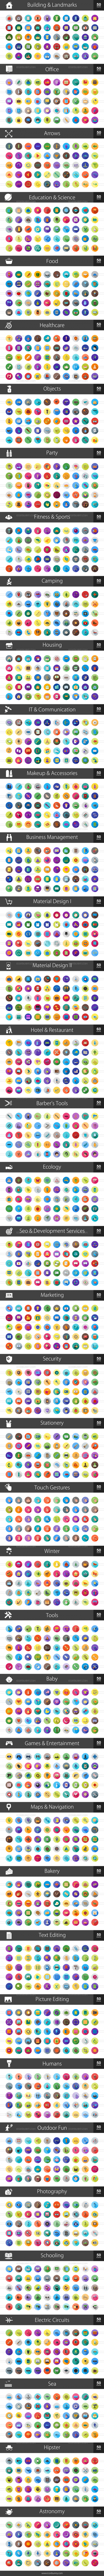 2010 Flat Shadowed Icons Bundle - Preview - IconBunny